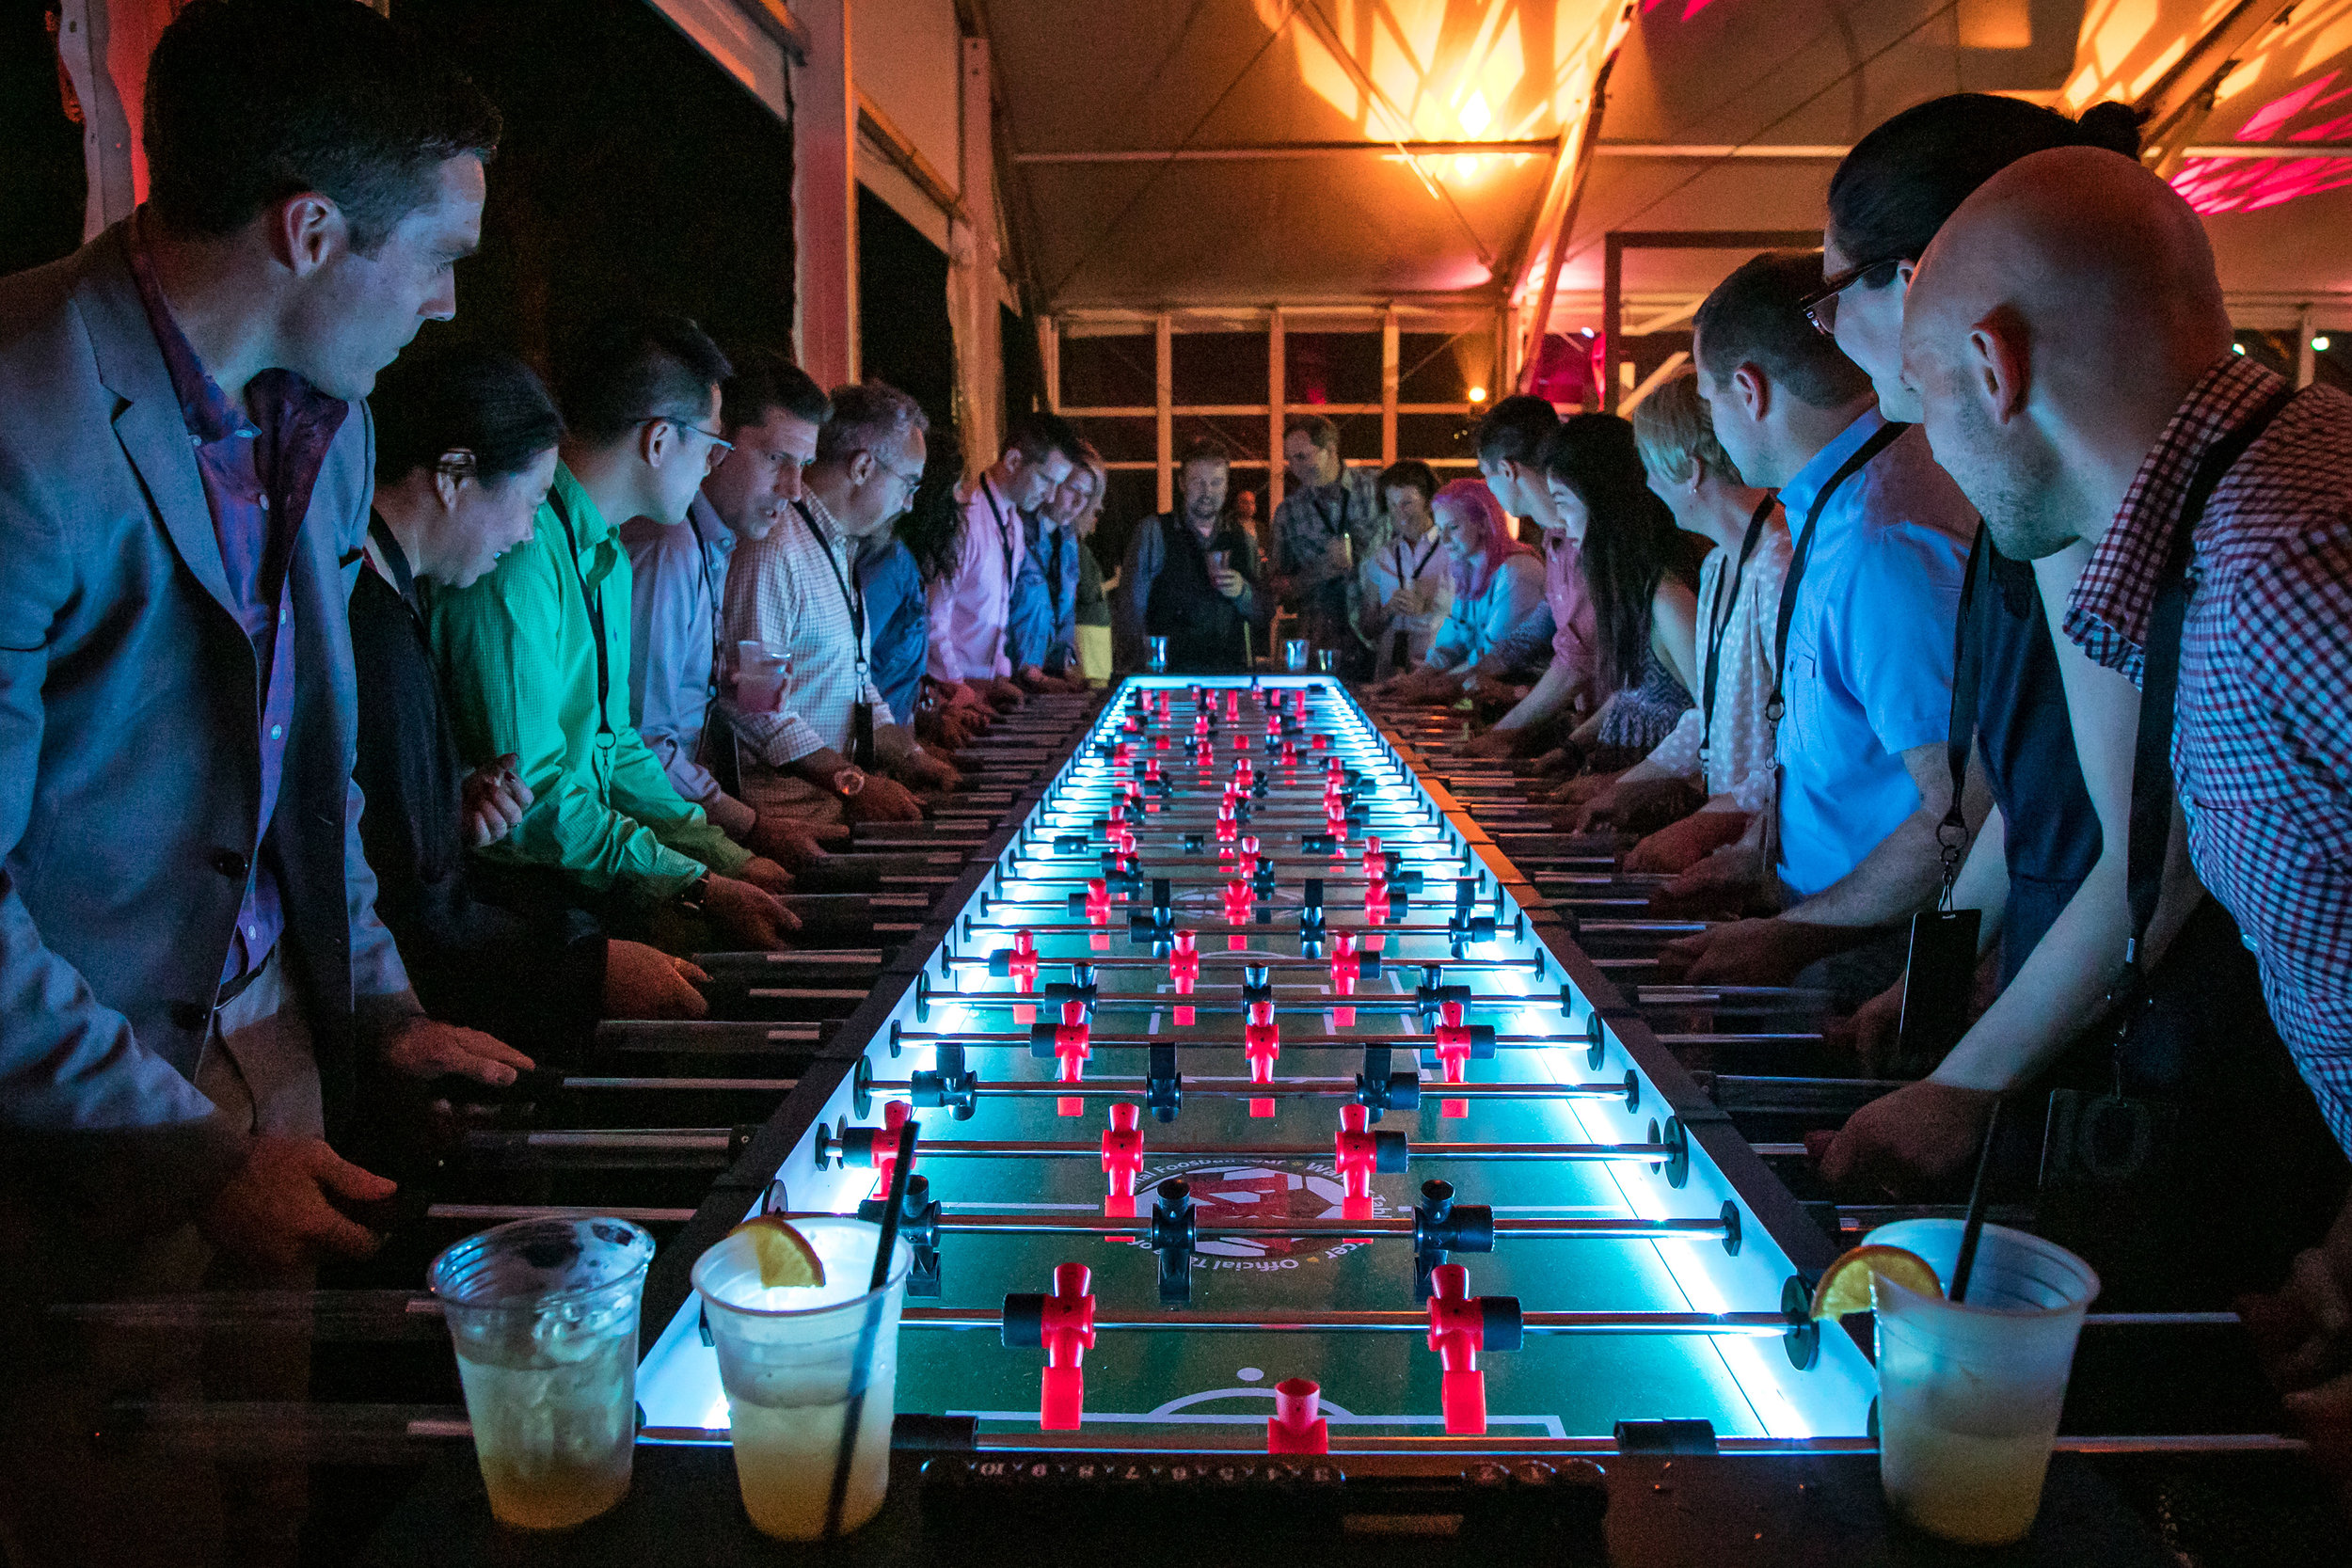 Giant Fooseball Table